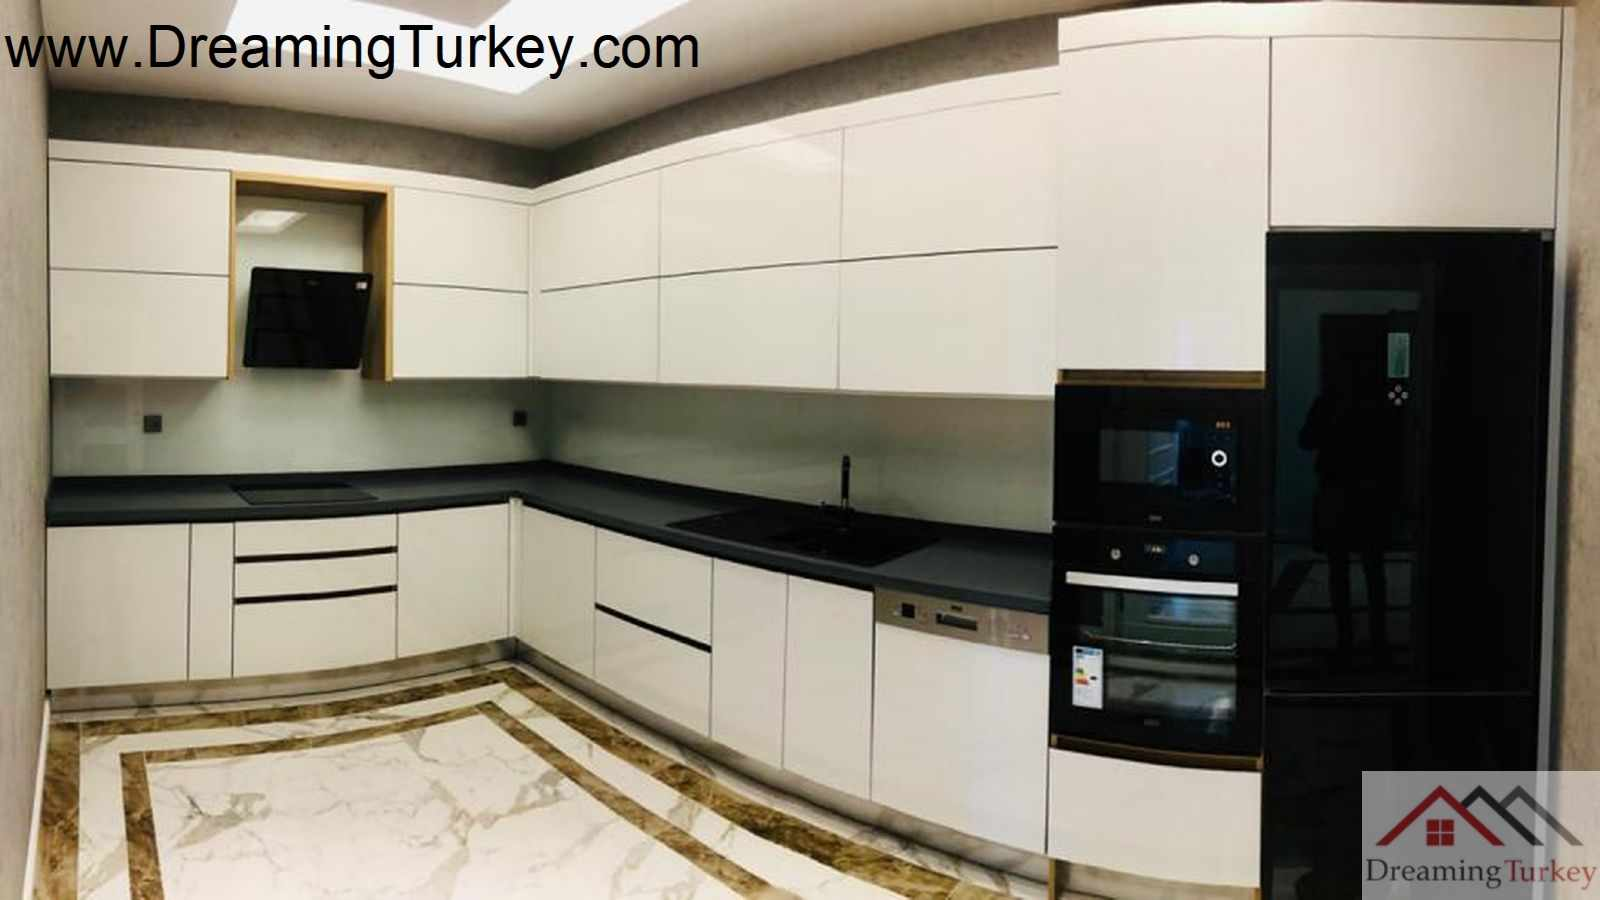 1-Bedroom Apartment in a Modern Complex Near the Metrobus